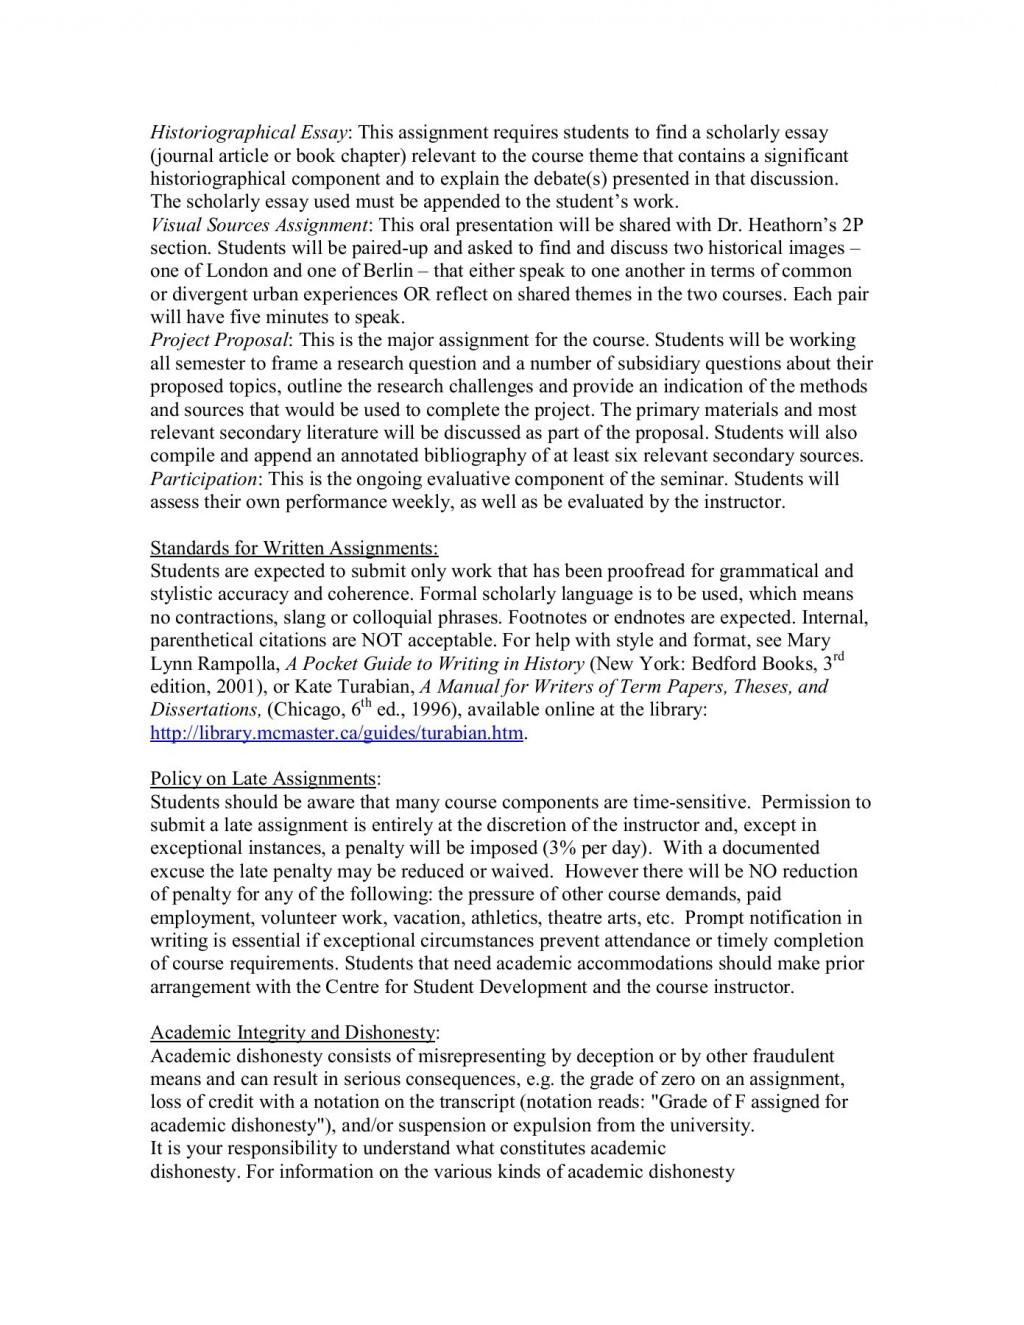 010 Historiographical Essay Phenomenal Historiography Sample On Slavery Topics Large